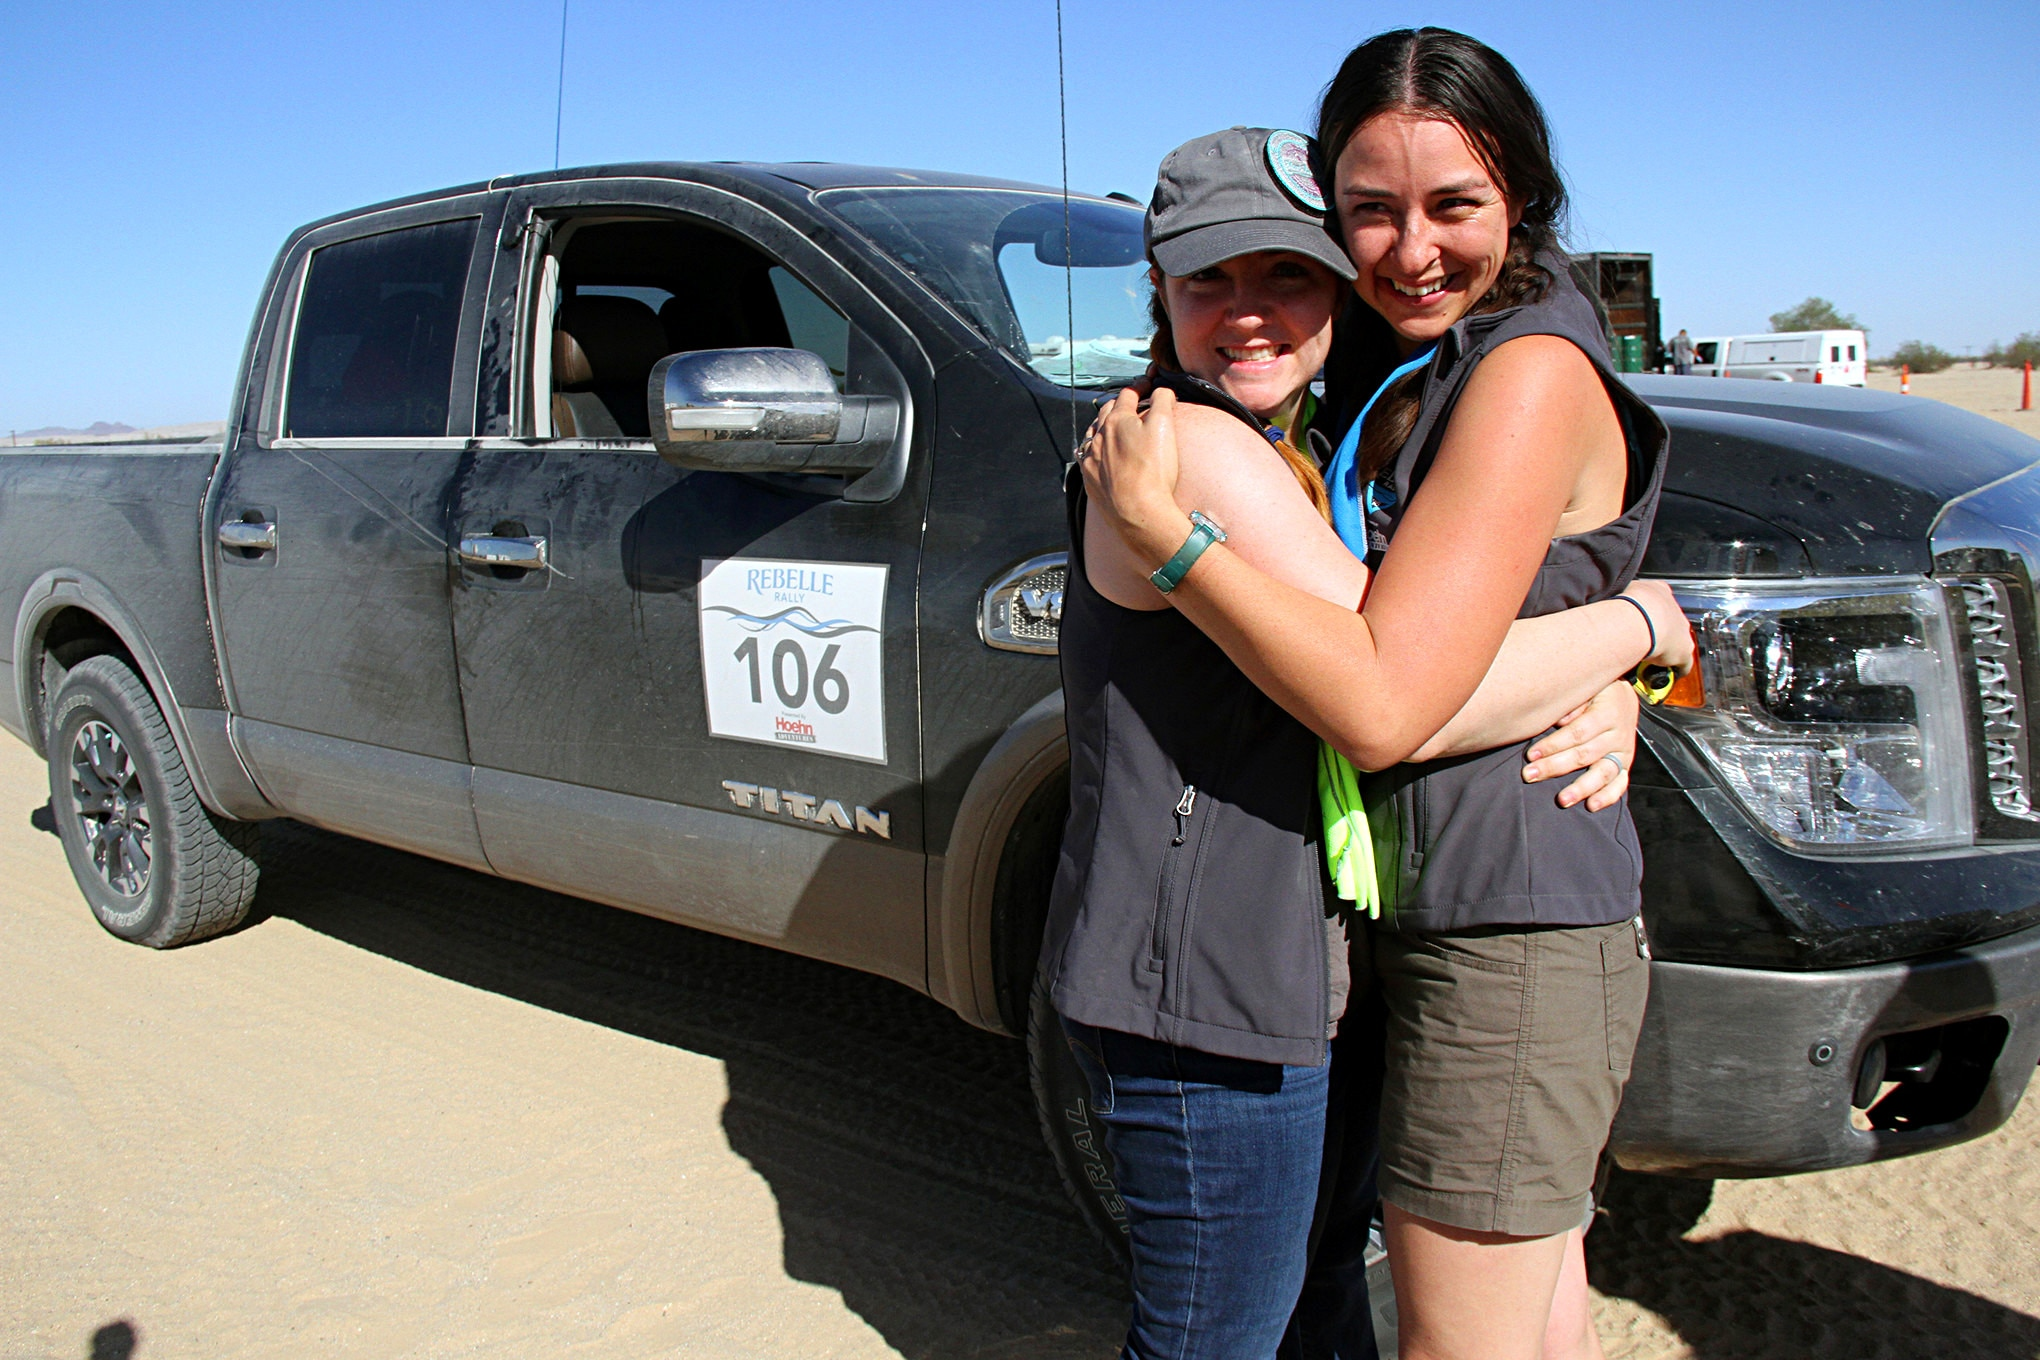 Maria Clay and Sedona Blinson went into the Rally as best friends. The Rally brought them even closer together while they spent long hours in the truck.